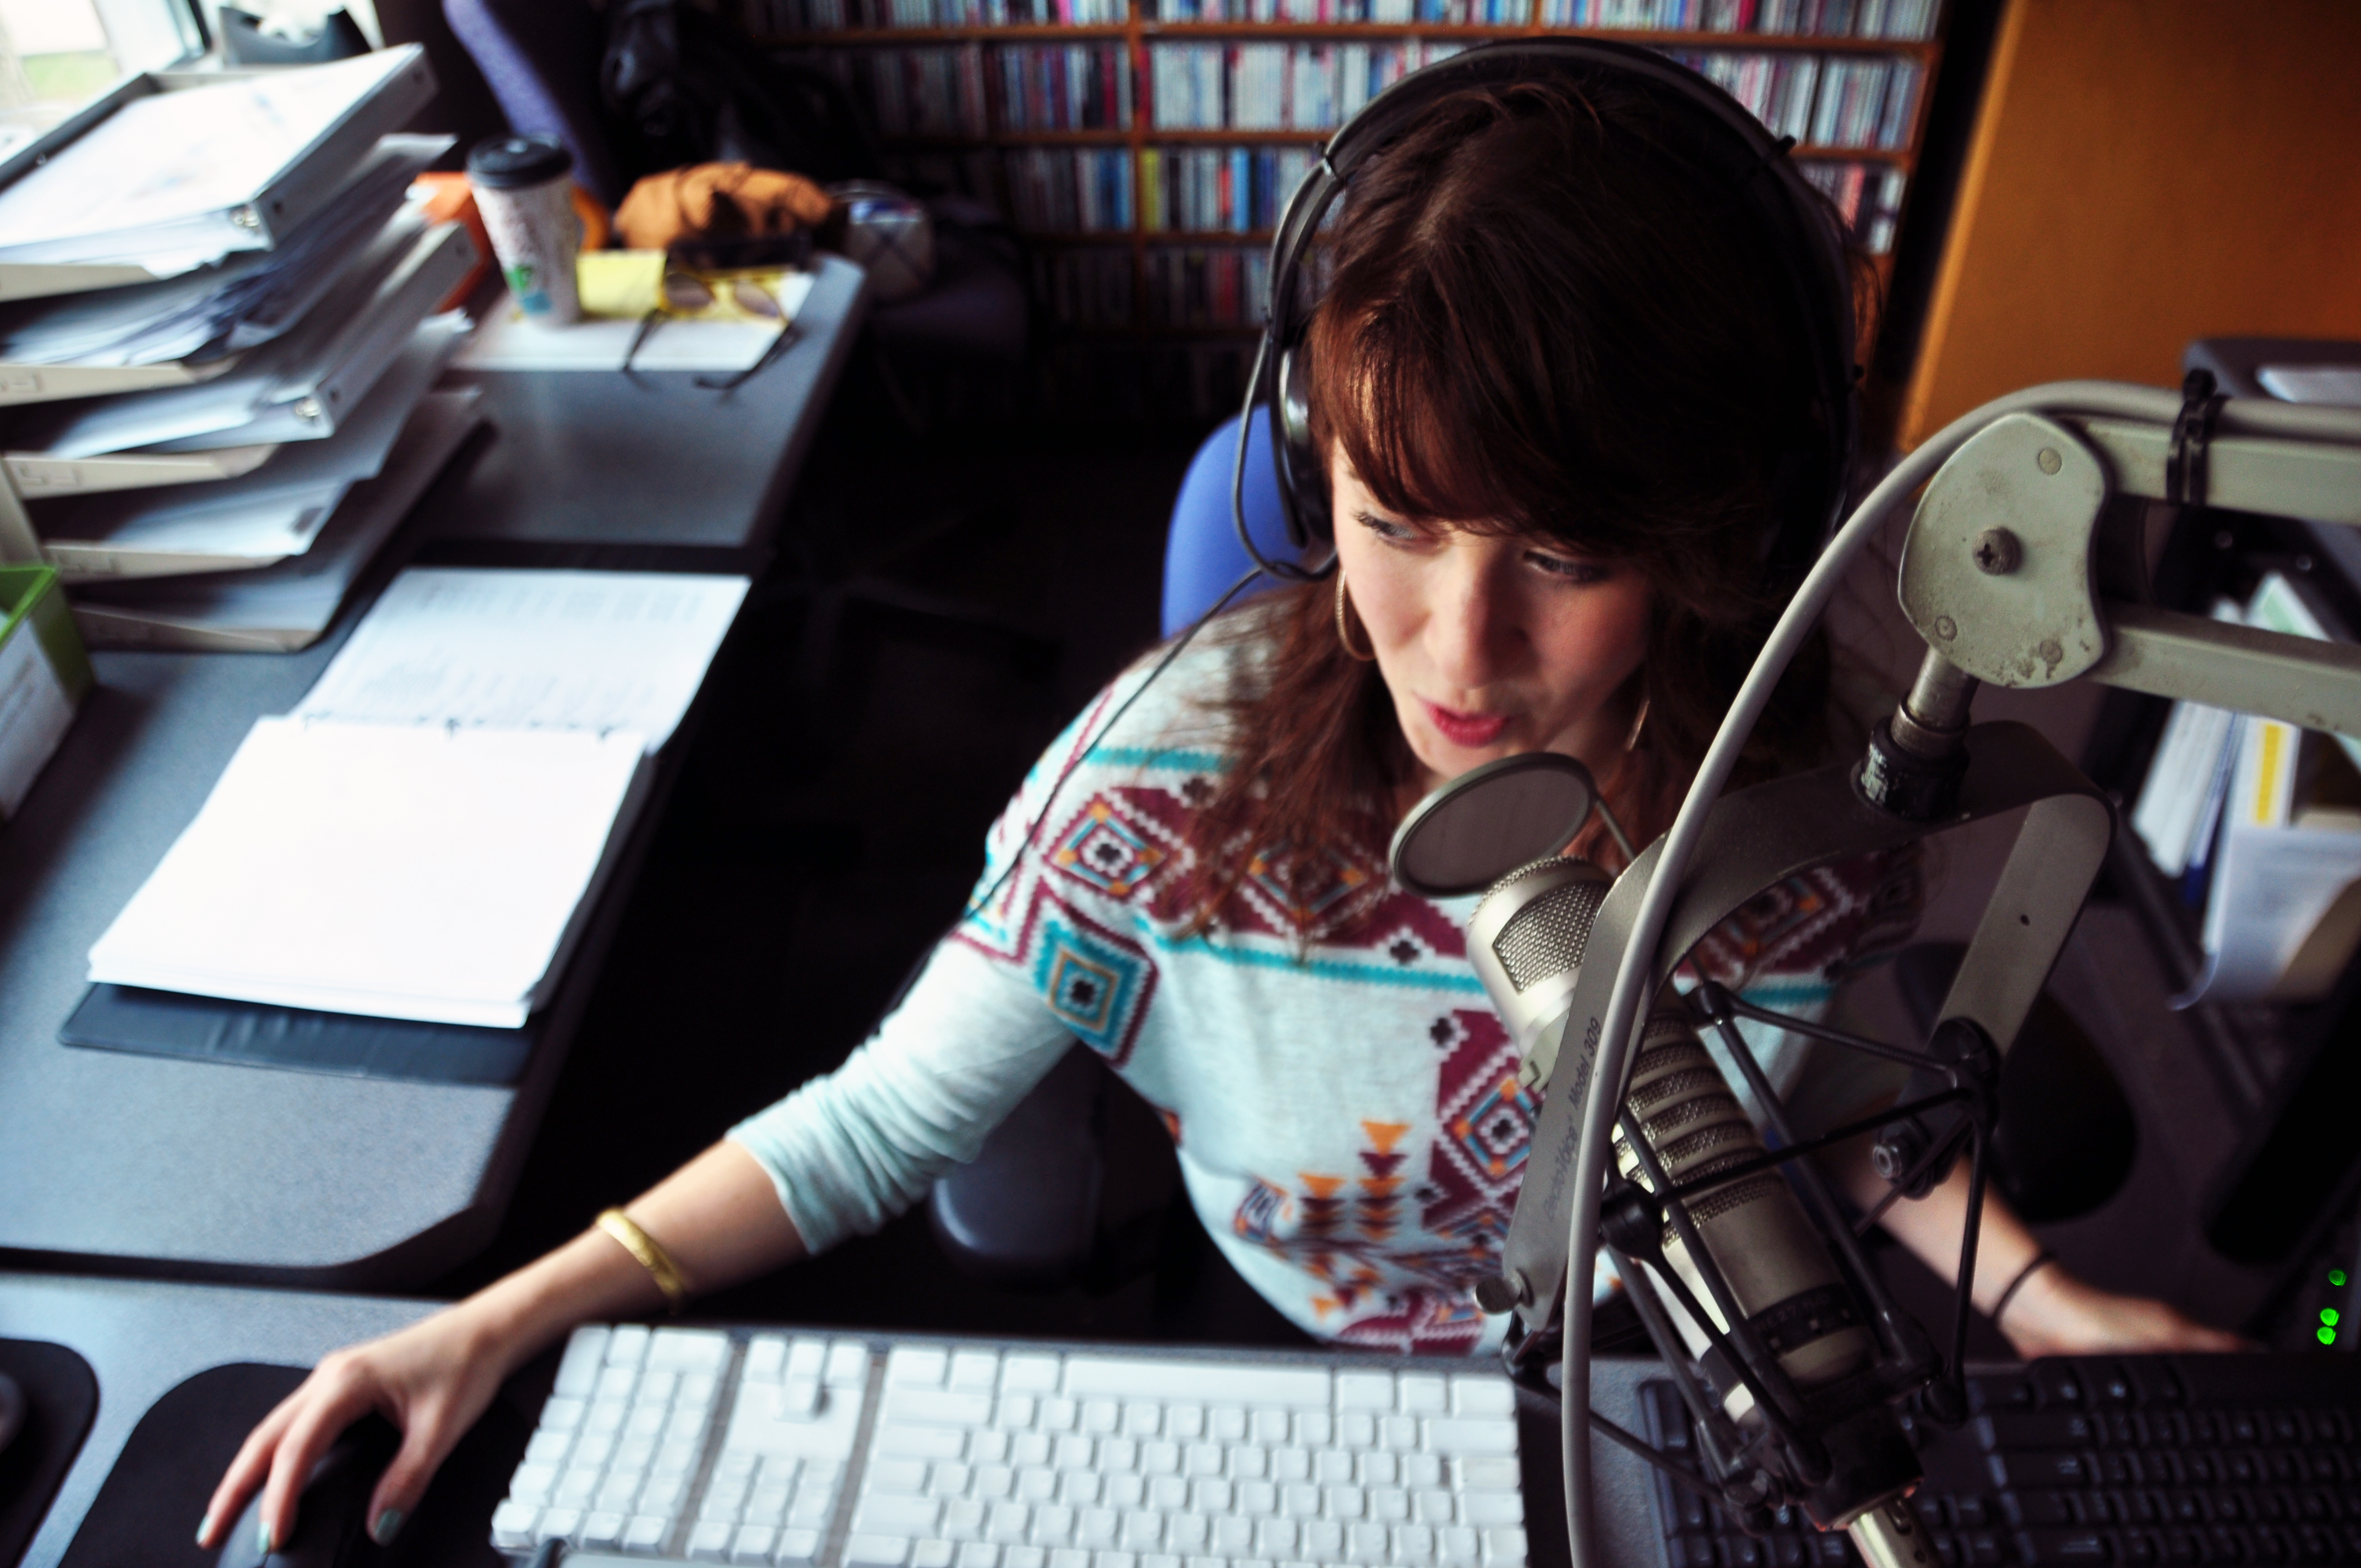 Kvno Launches Annual On Air Fall Fundraising Campaign